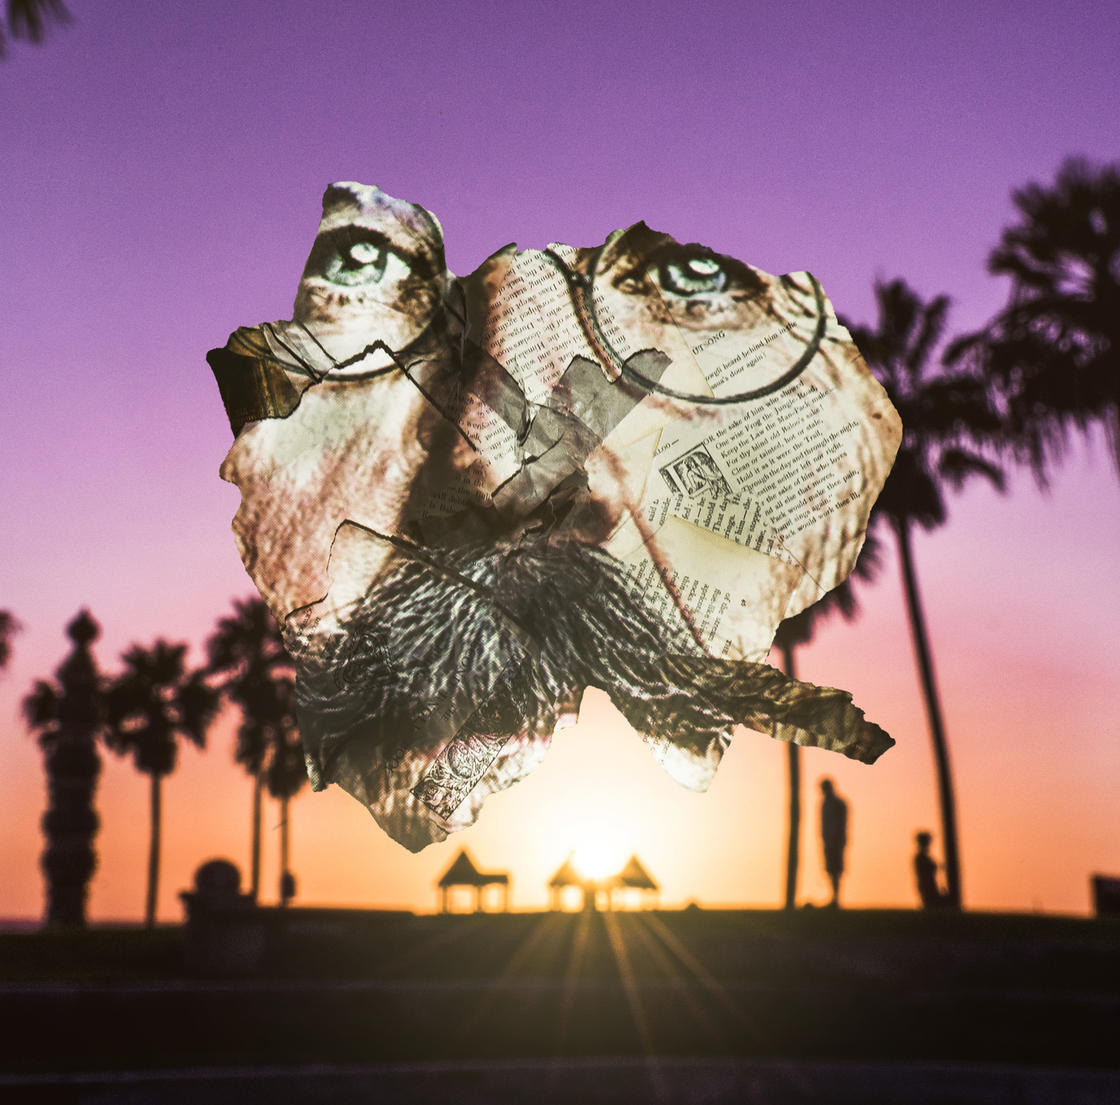 This artist projects the people of Los Angeles on the waste from the city